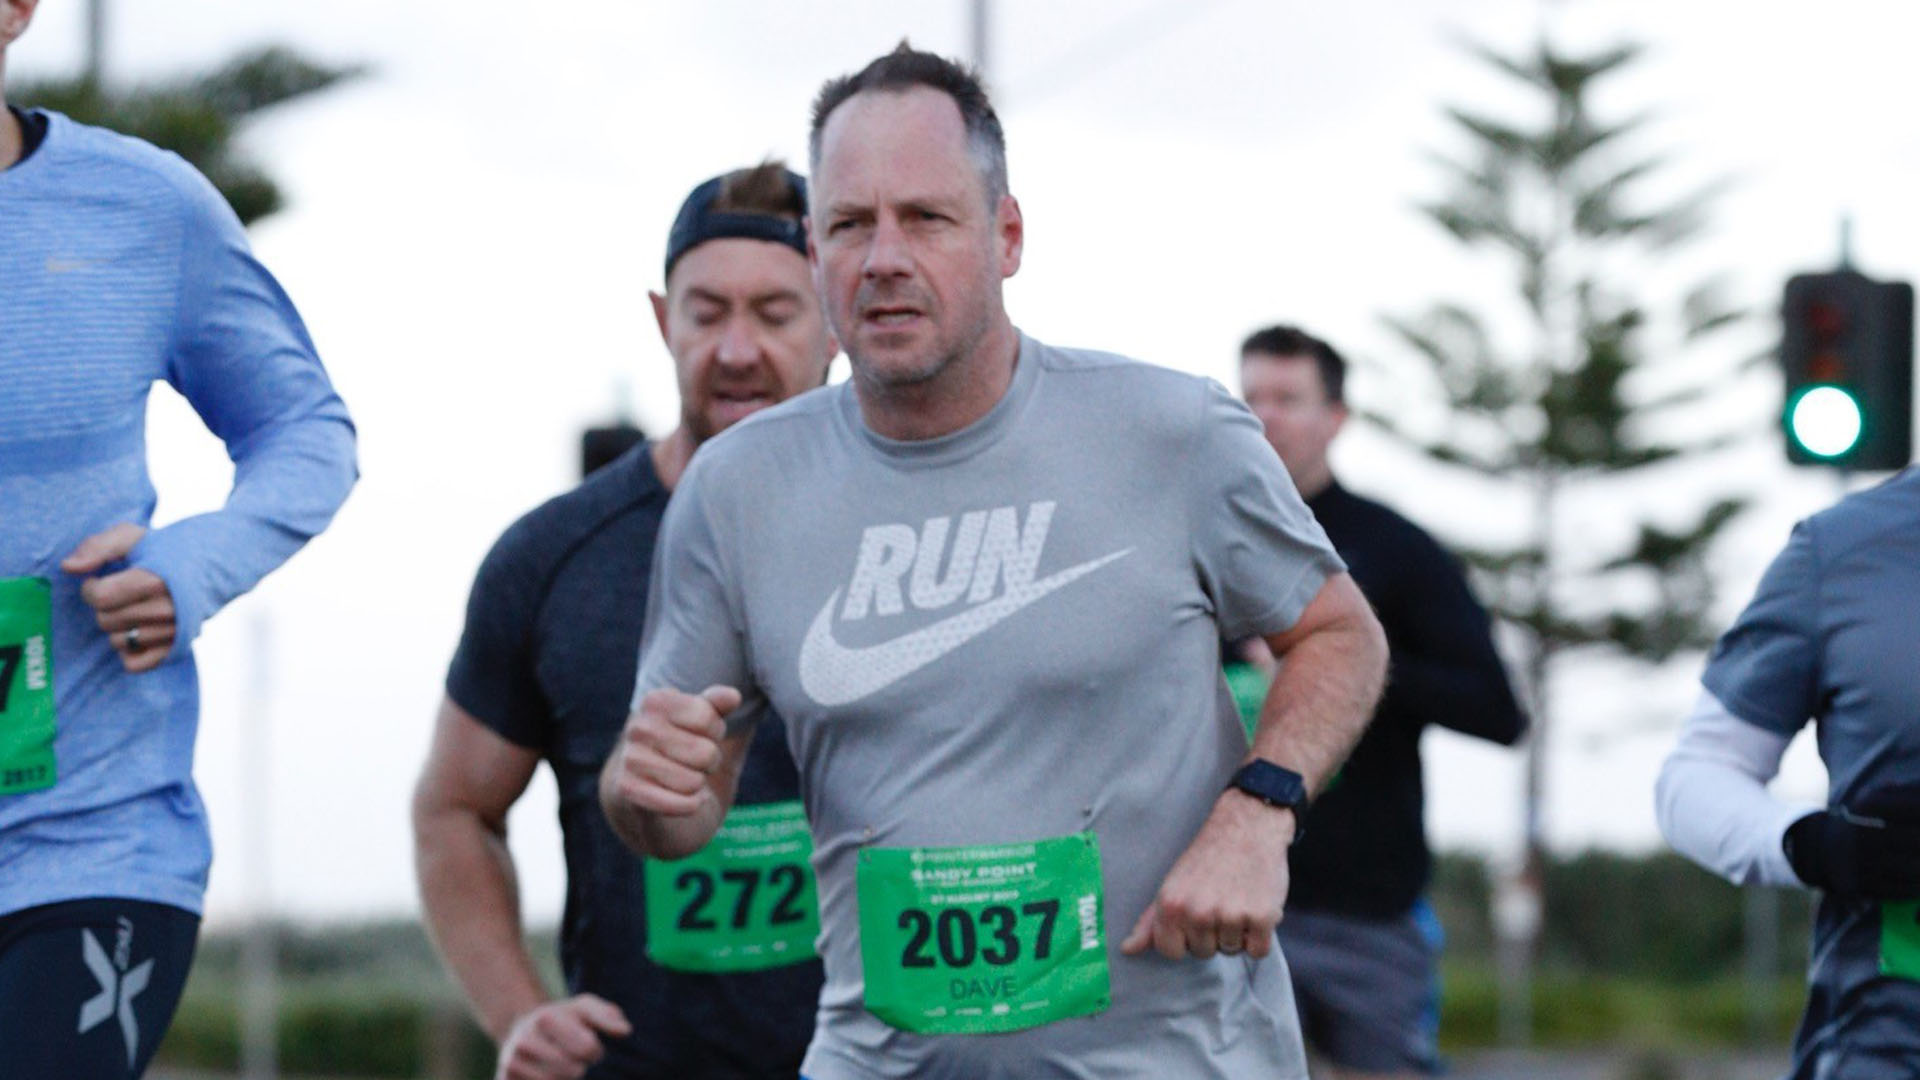 Dave Cameron, APAC Regional Director at Point of Rental, goes for a run